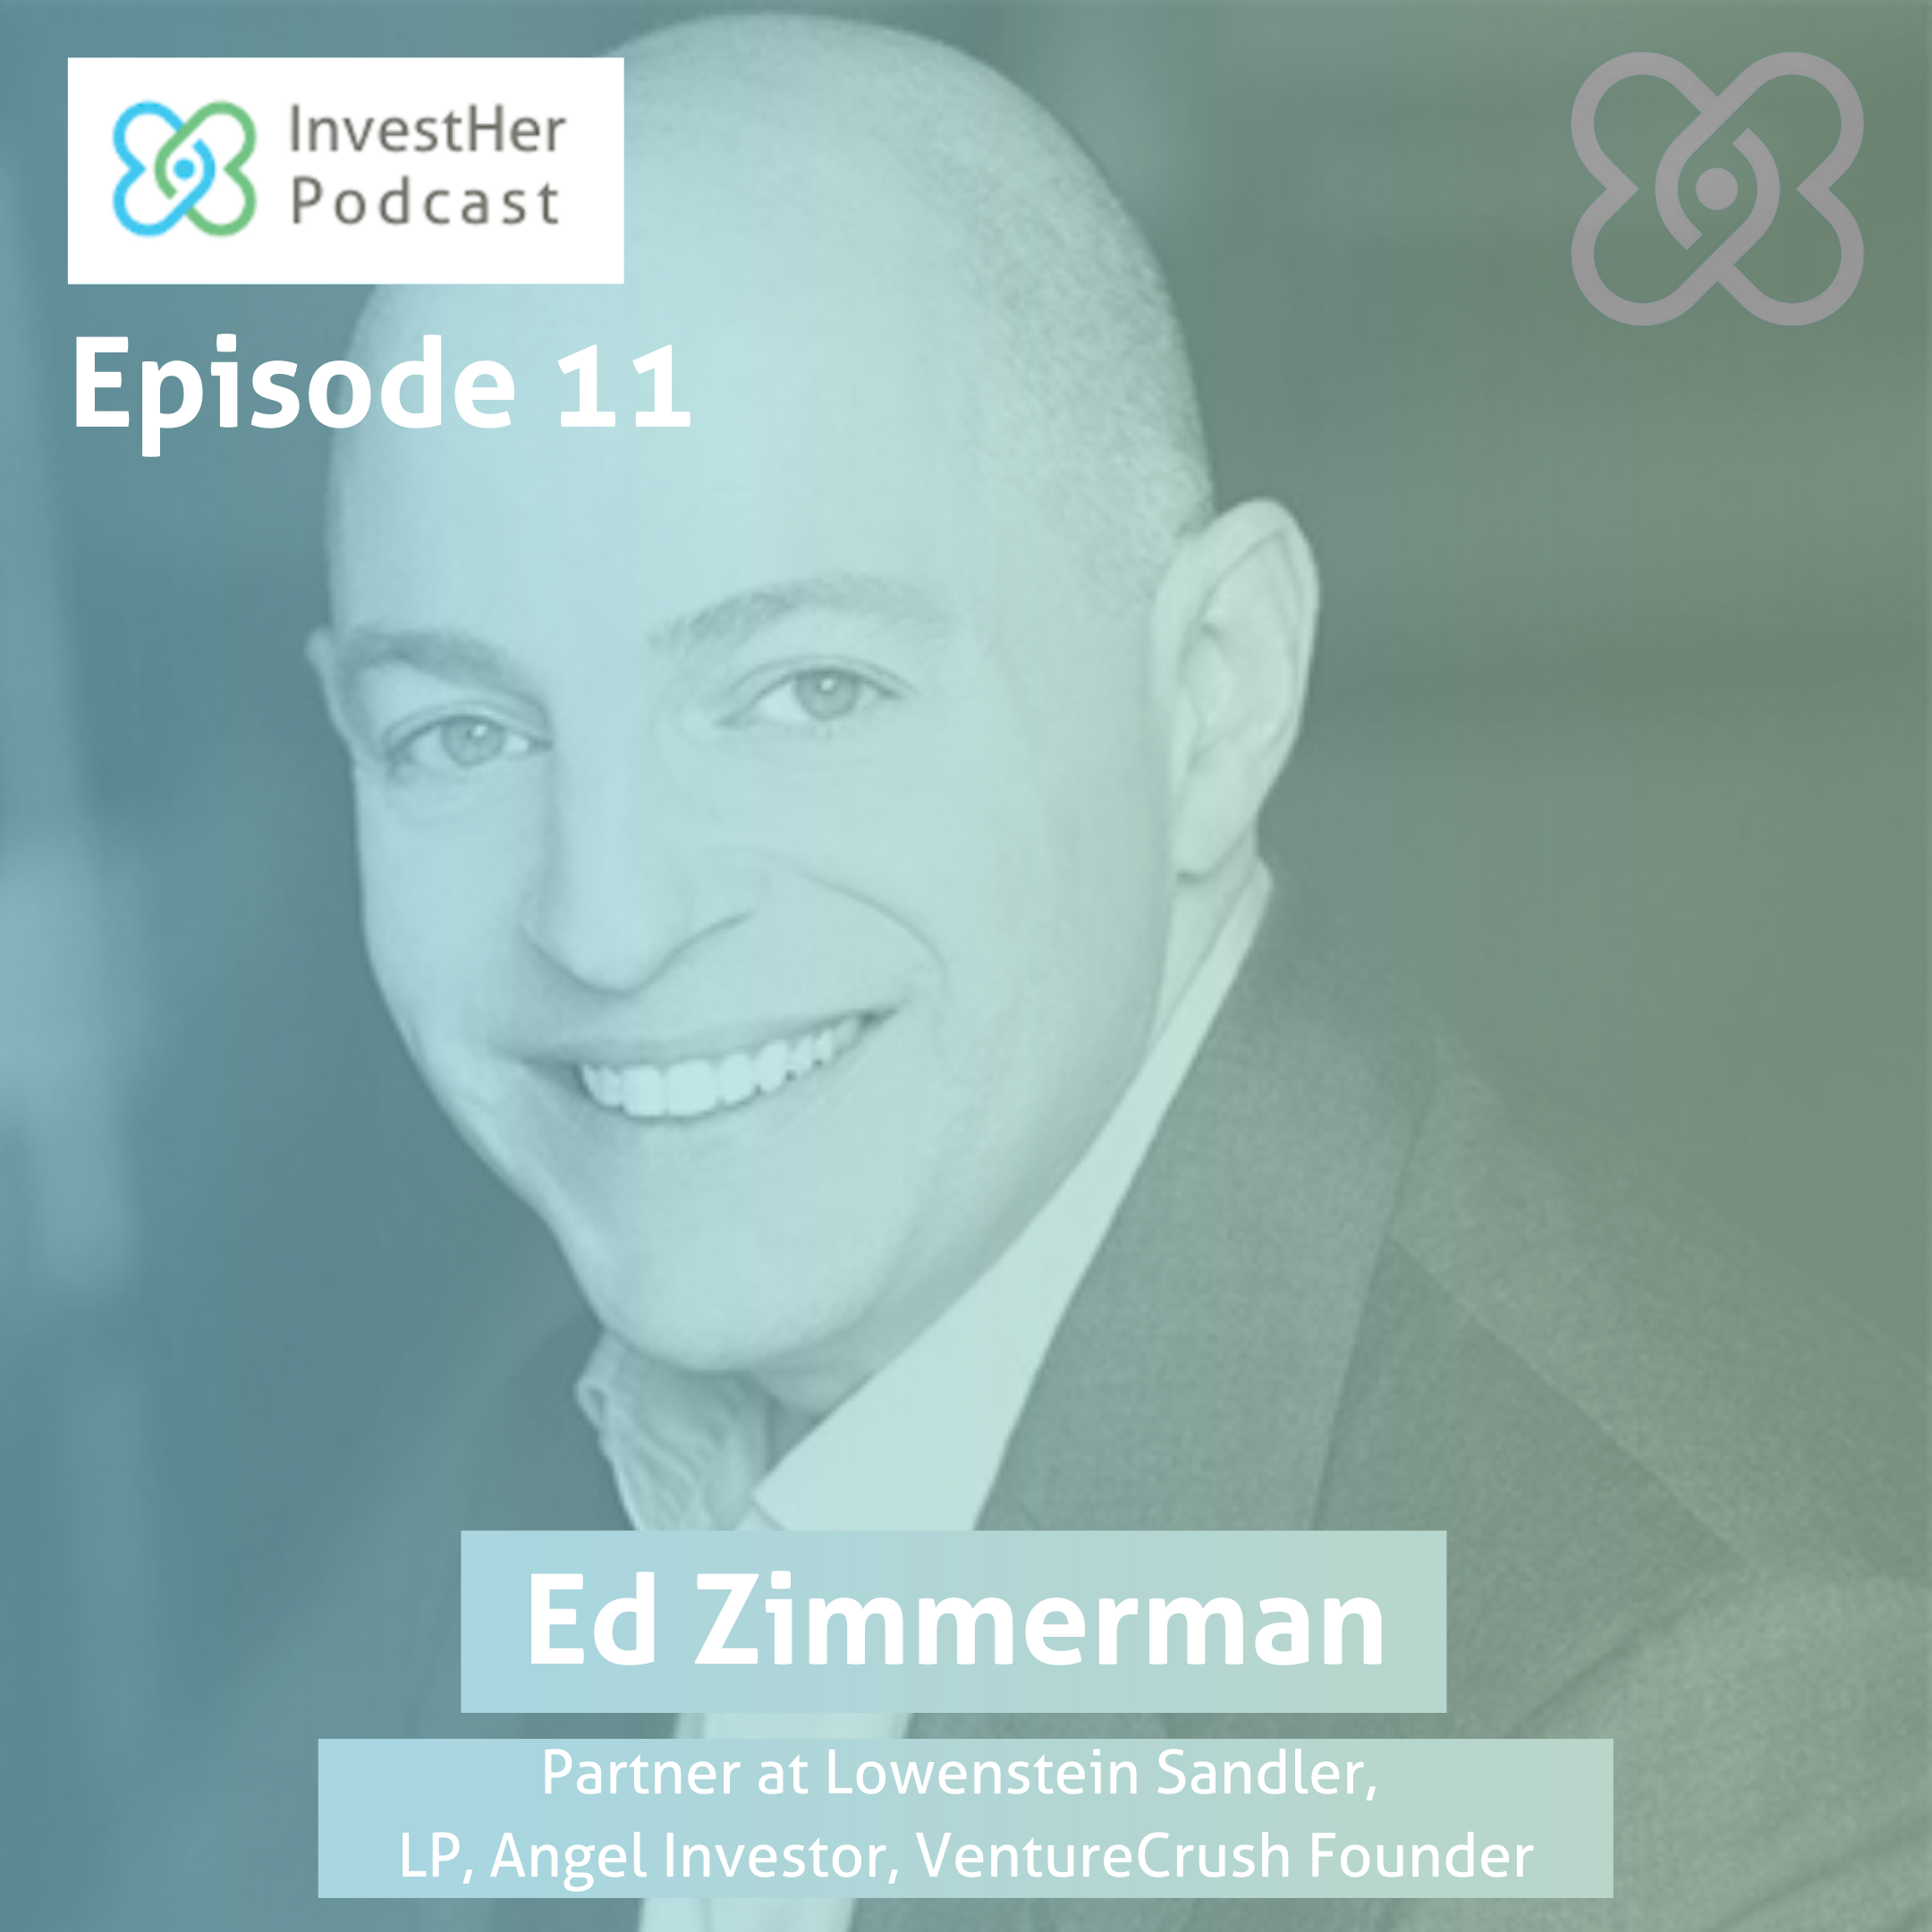 How to Raise Capital in the U.S. Especially During Covid19 - Ed Zimmerman